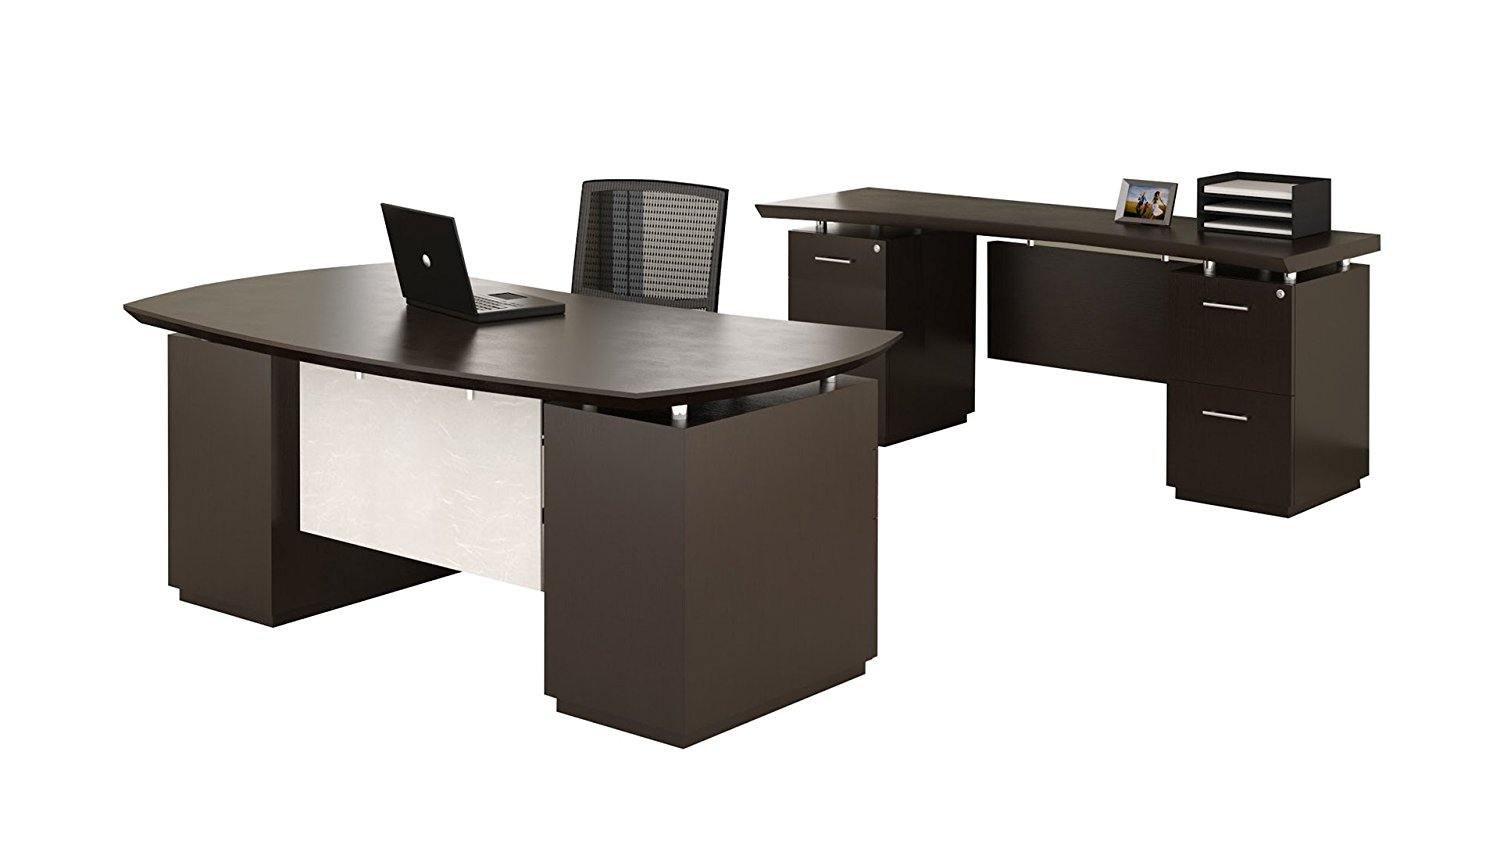 "Mayline Desk & Credenza Set Desk Dimensions: 72""W X 39""D X 29.5""H Credenza Dimensions: 72""W X 24""D X 29.5""H Both Desk & Credenza Feature 1 5/8"" Thick Work Surface - Textured Mocha"